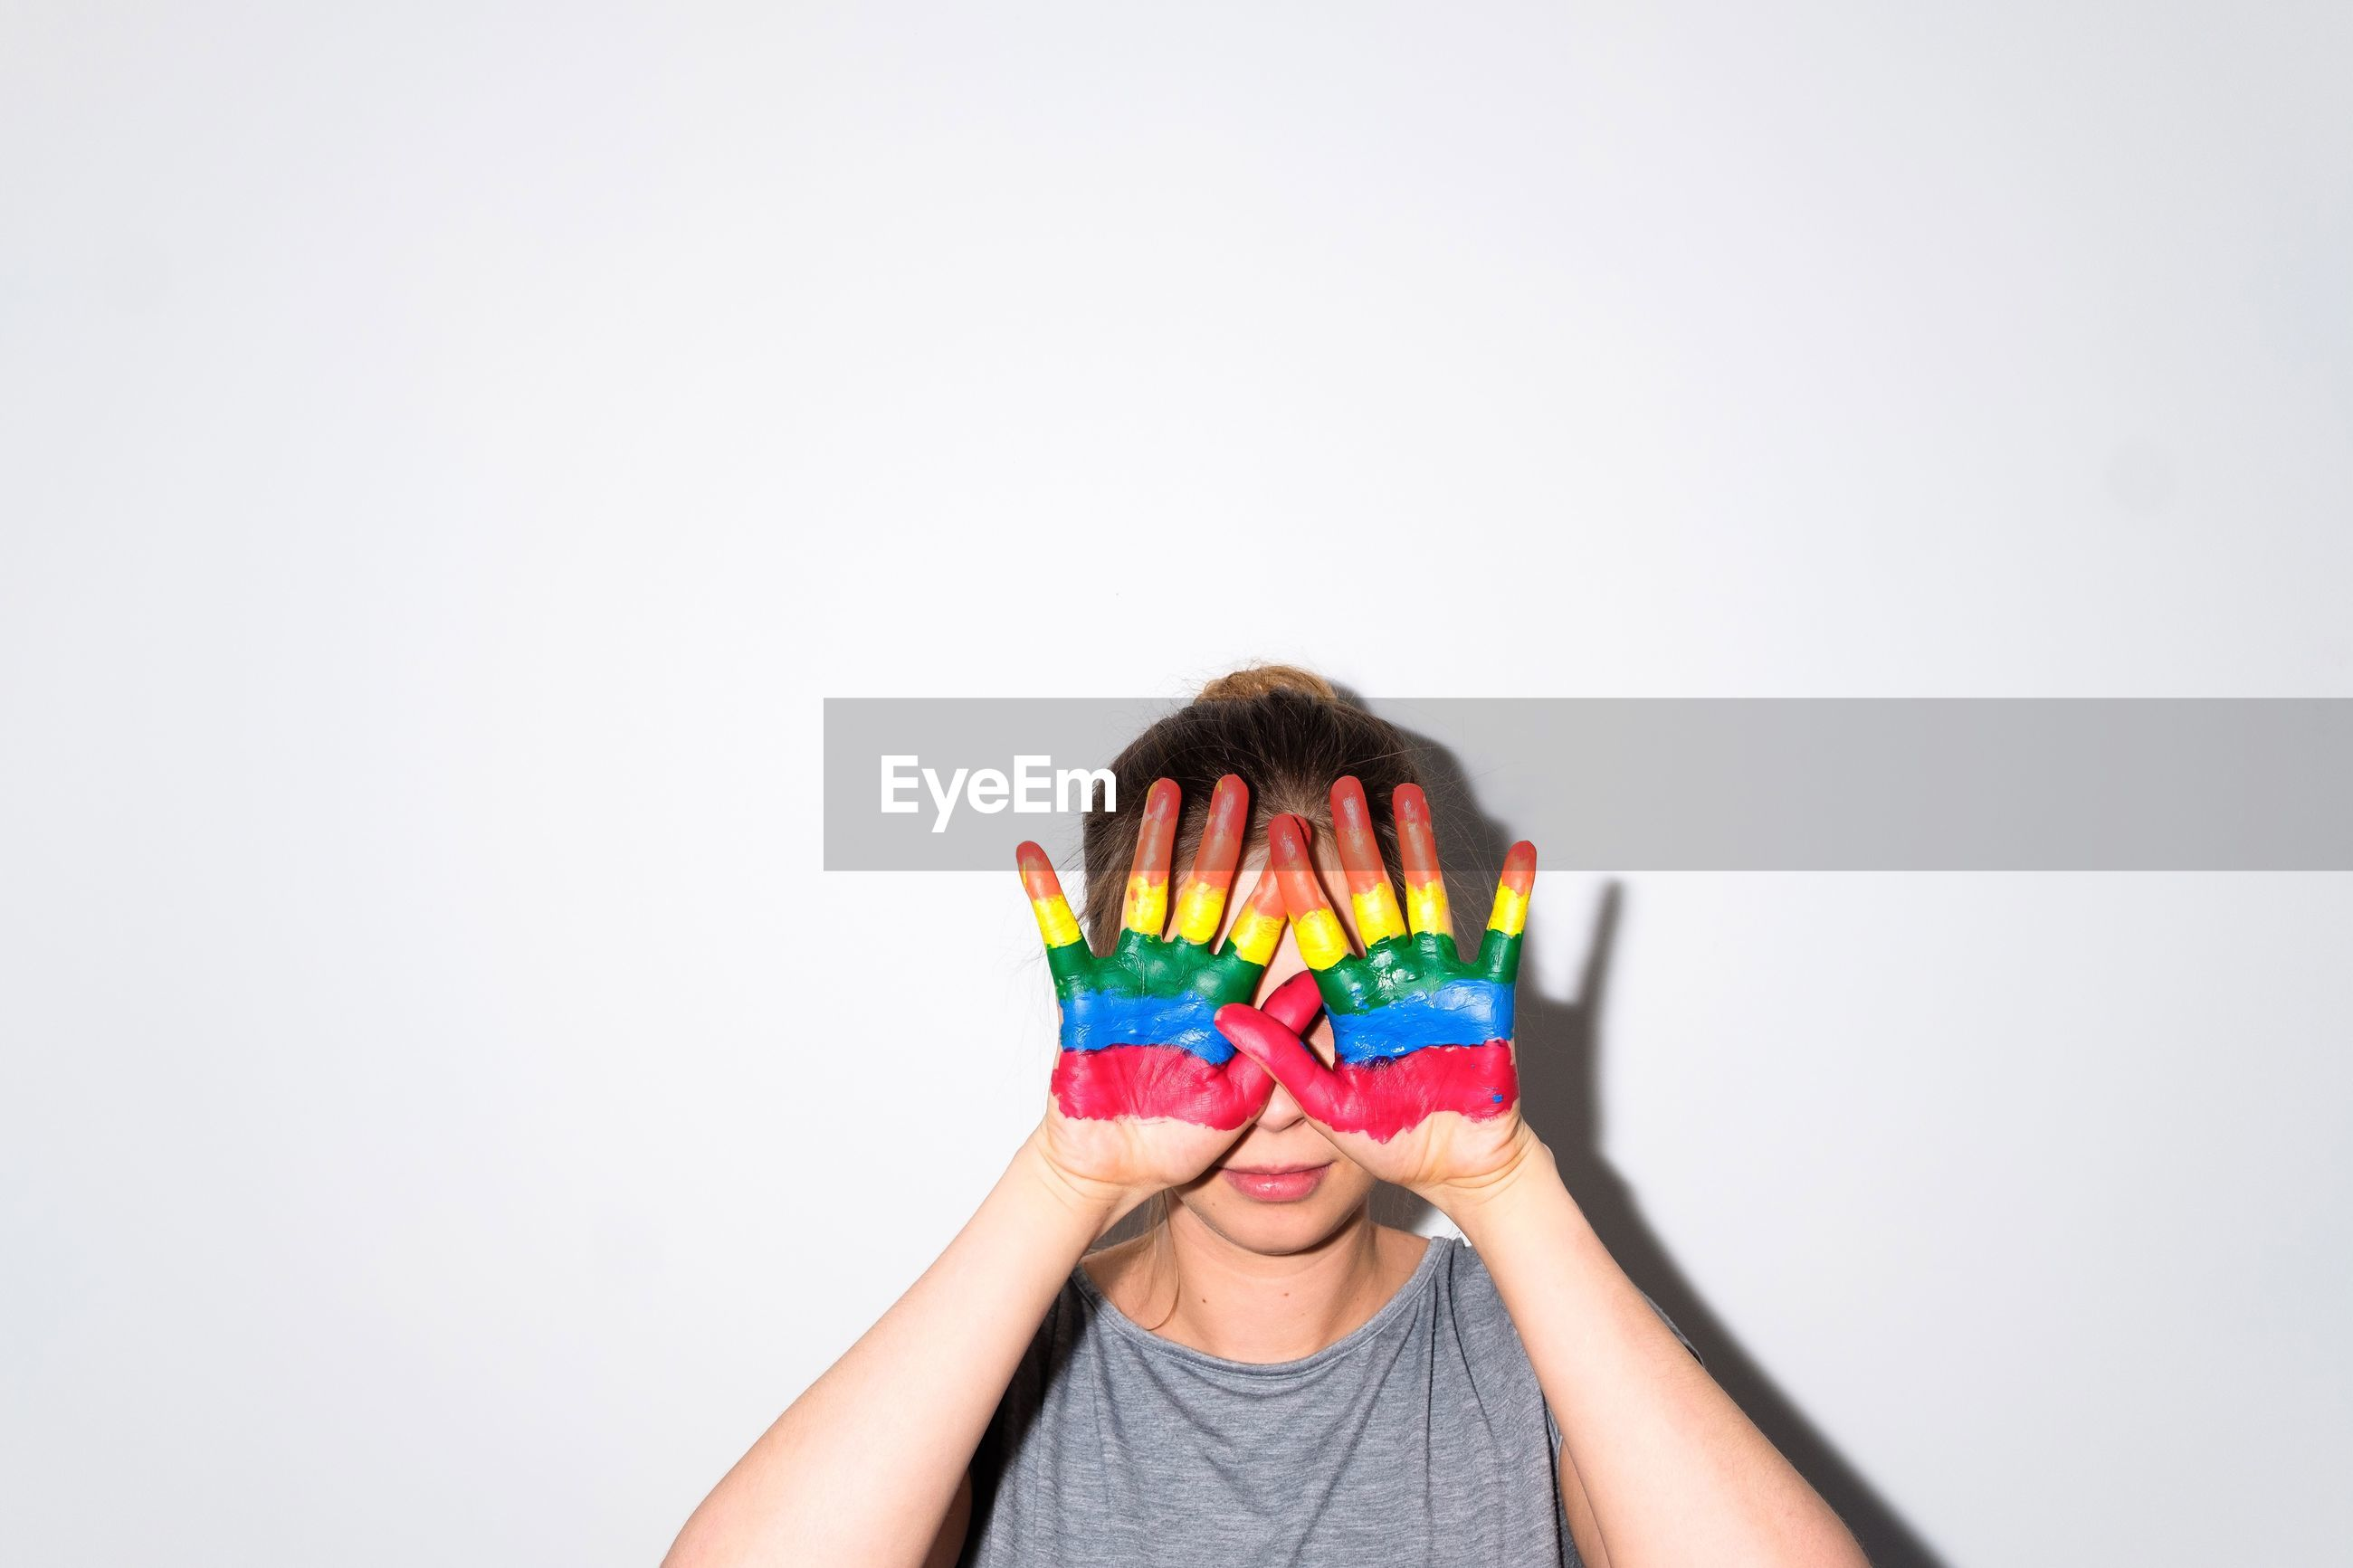 Young woman with colorful painted hands covering face while standing against wall